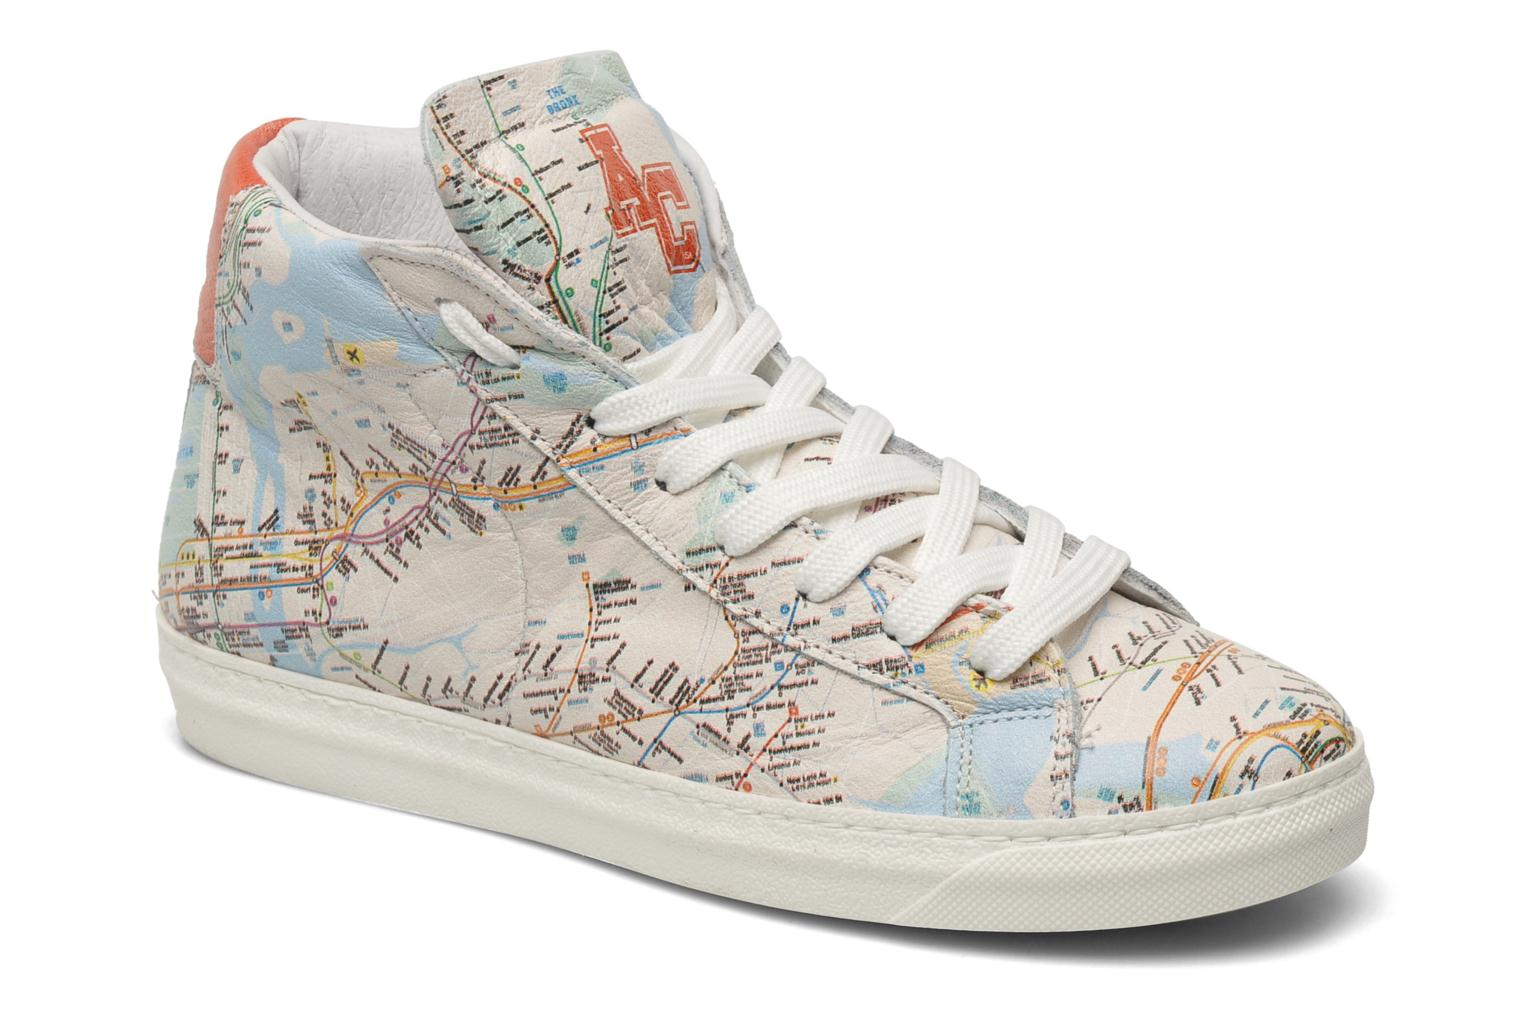 Sneakers American College Urban style m Multicolor detail